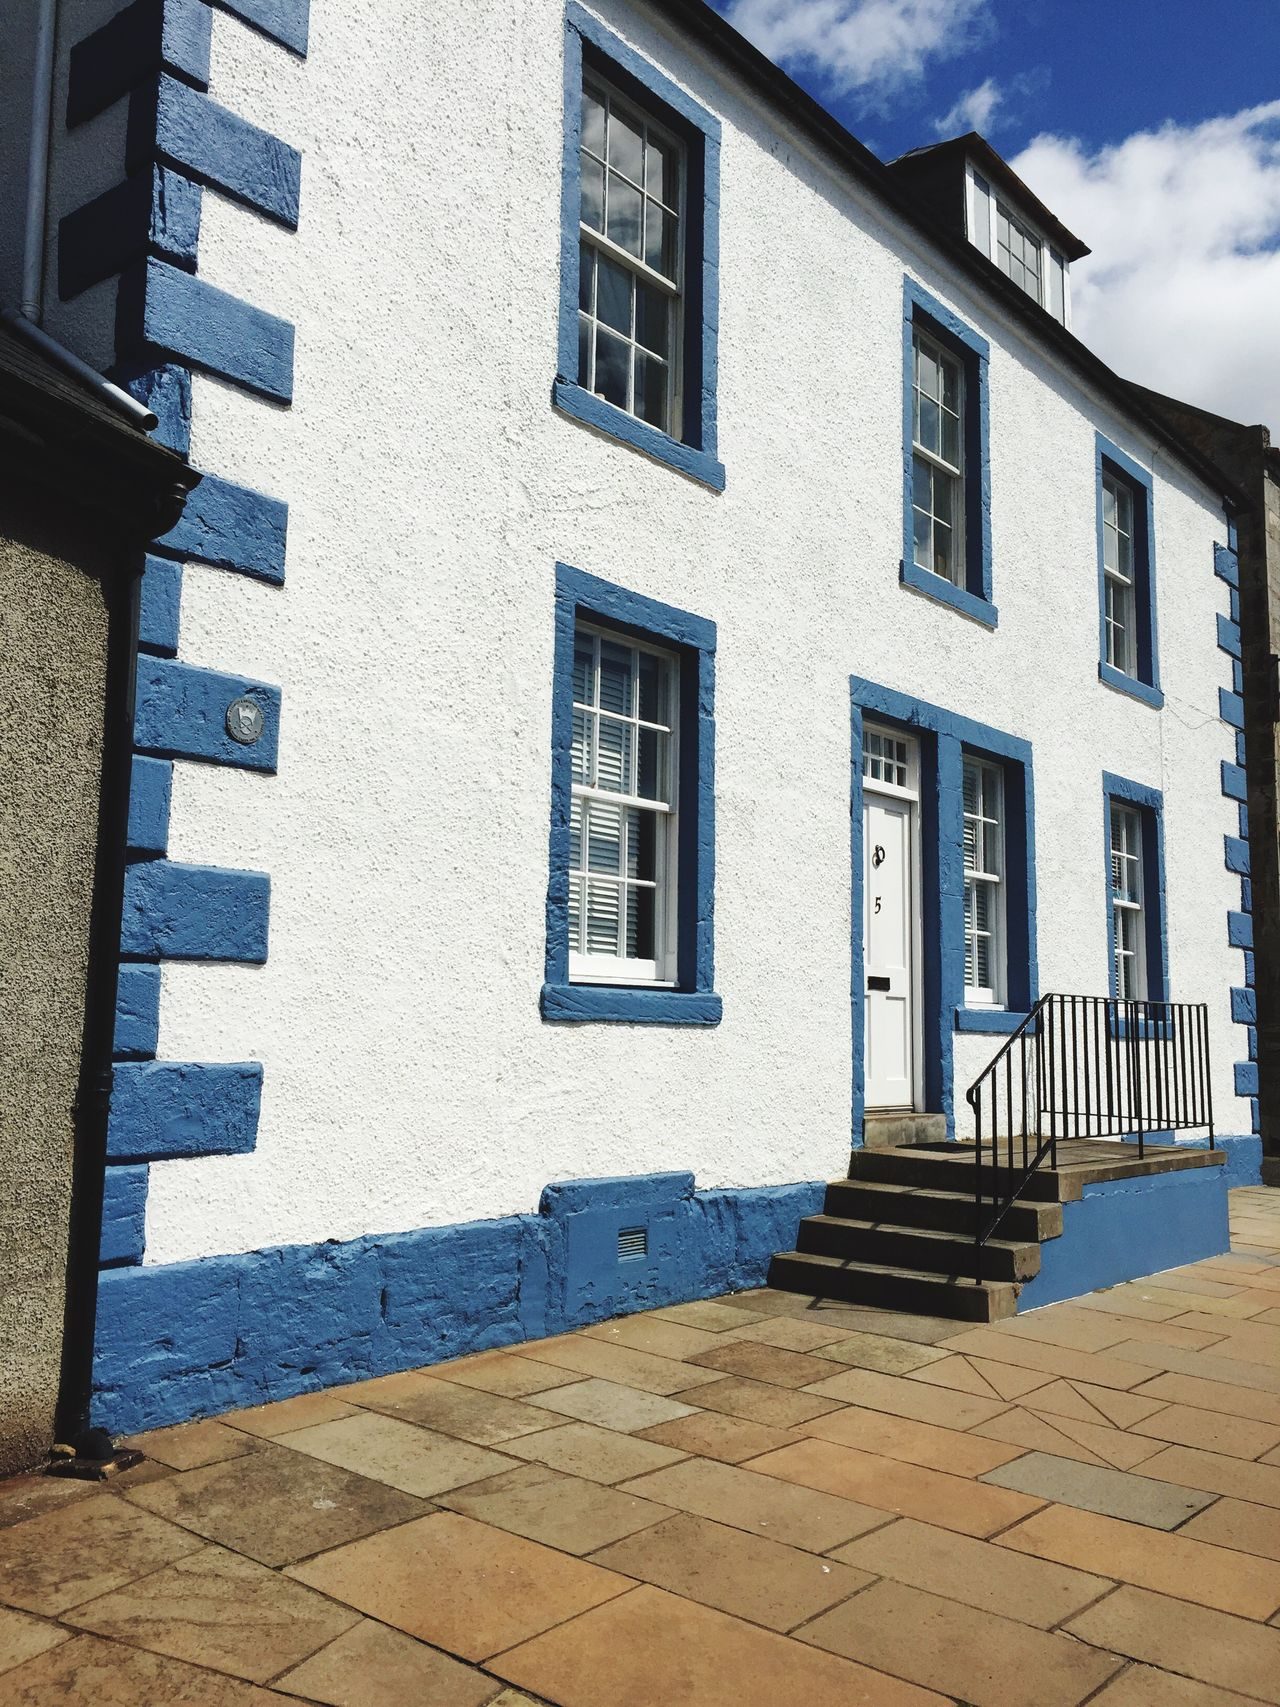 Beautiful stock photos of scotland,  Architecture,  Building Exterior,  Built Structure,  Day